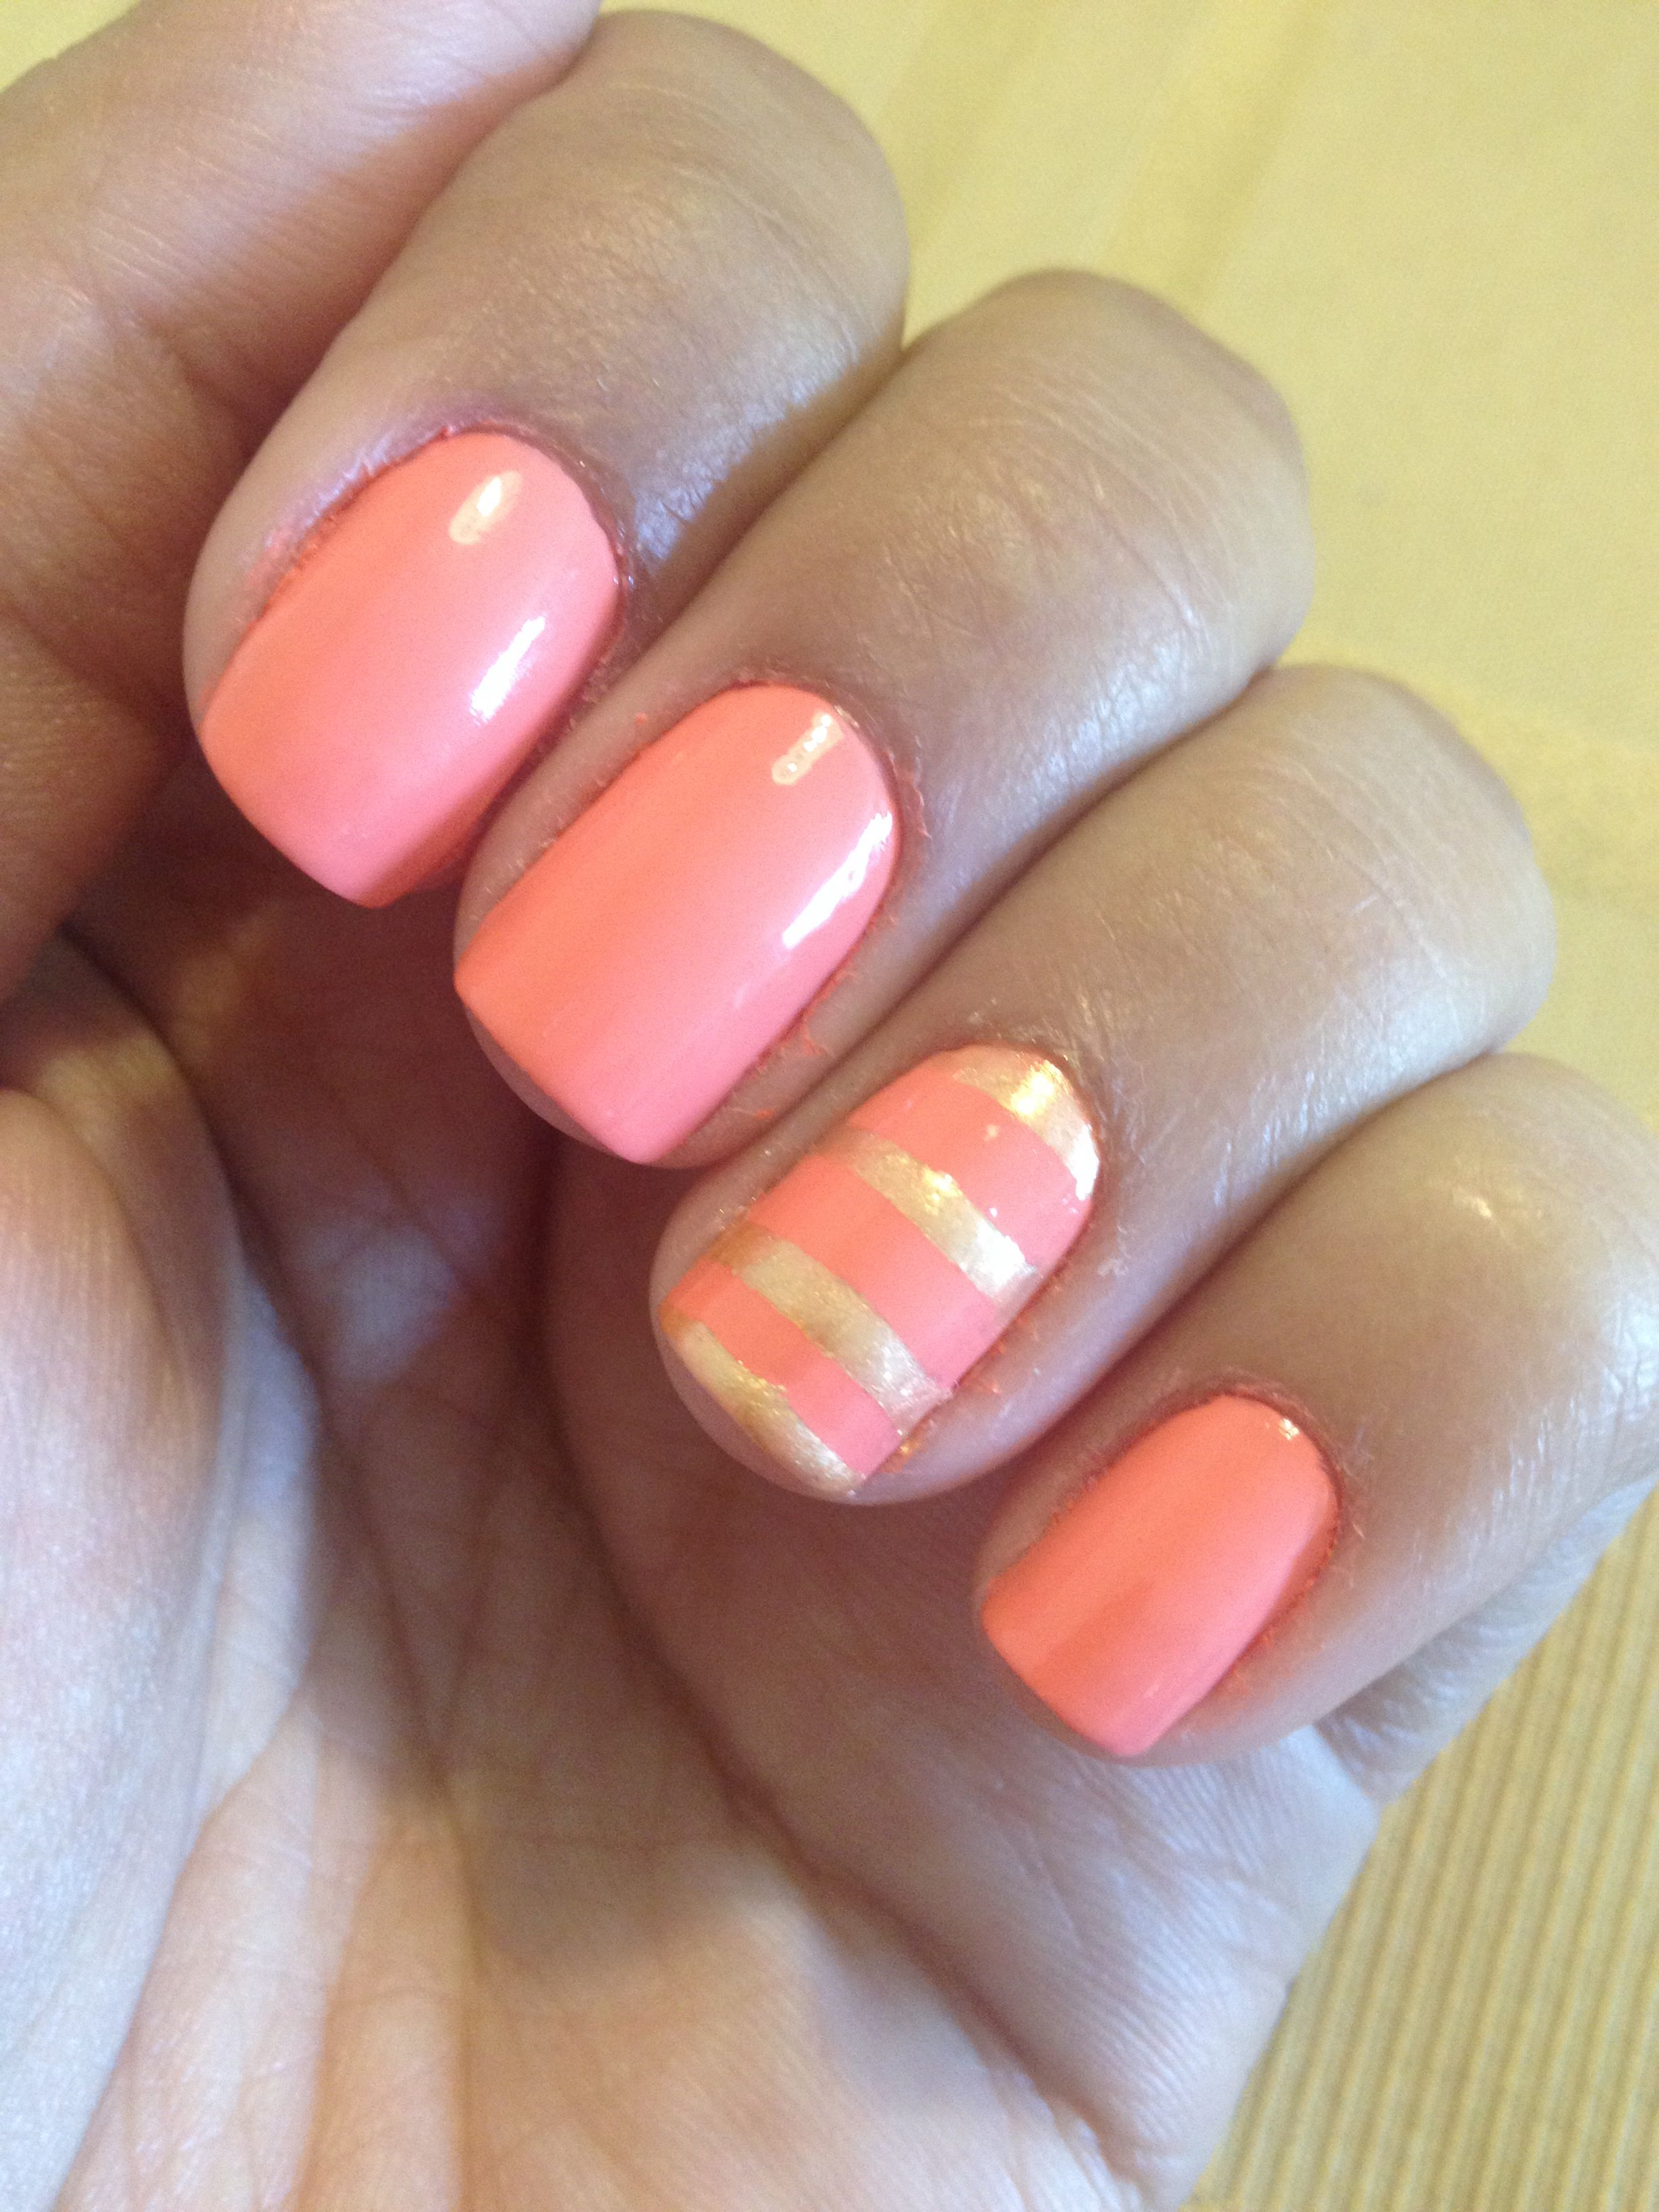 Essie tart deco nail art strips | Nails that I\'ve painted | Pinterest